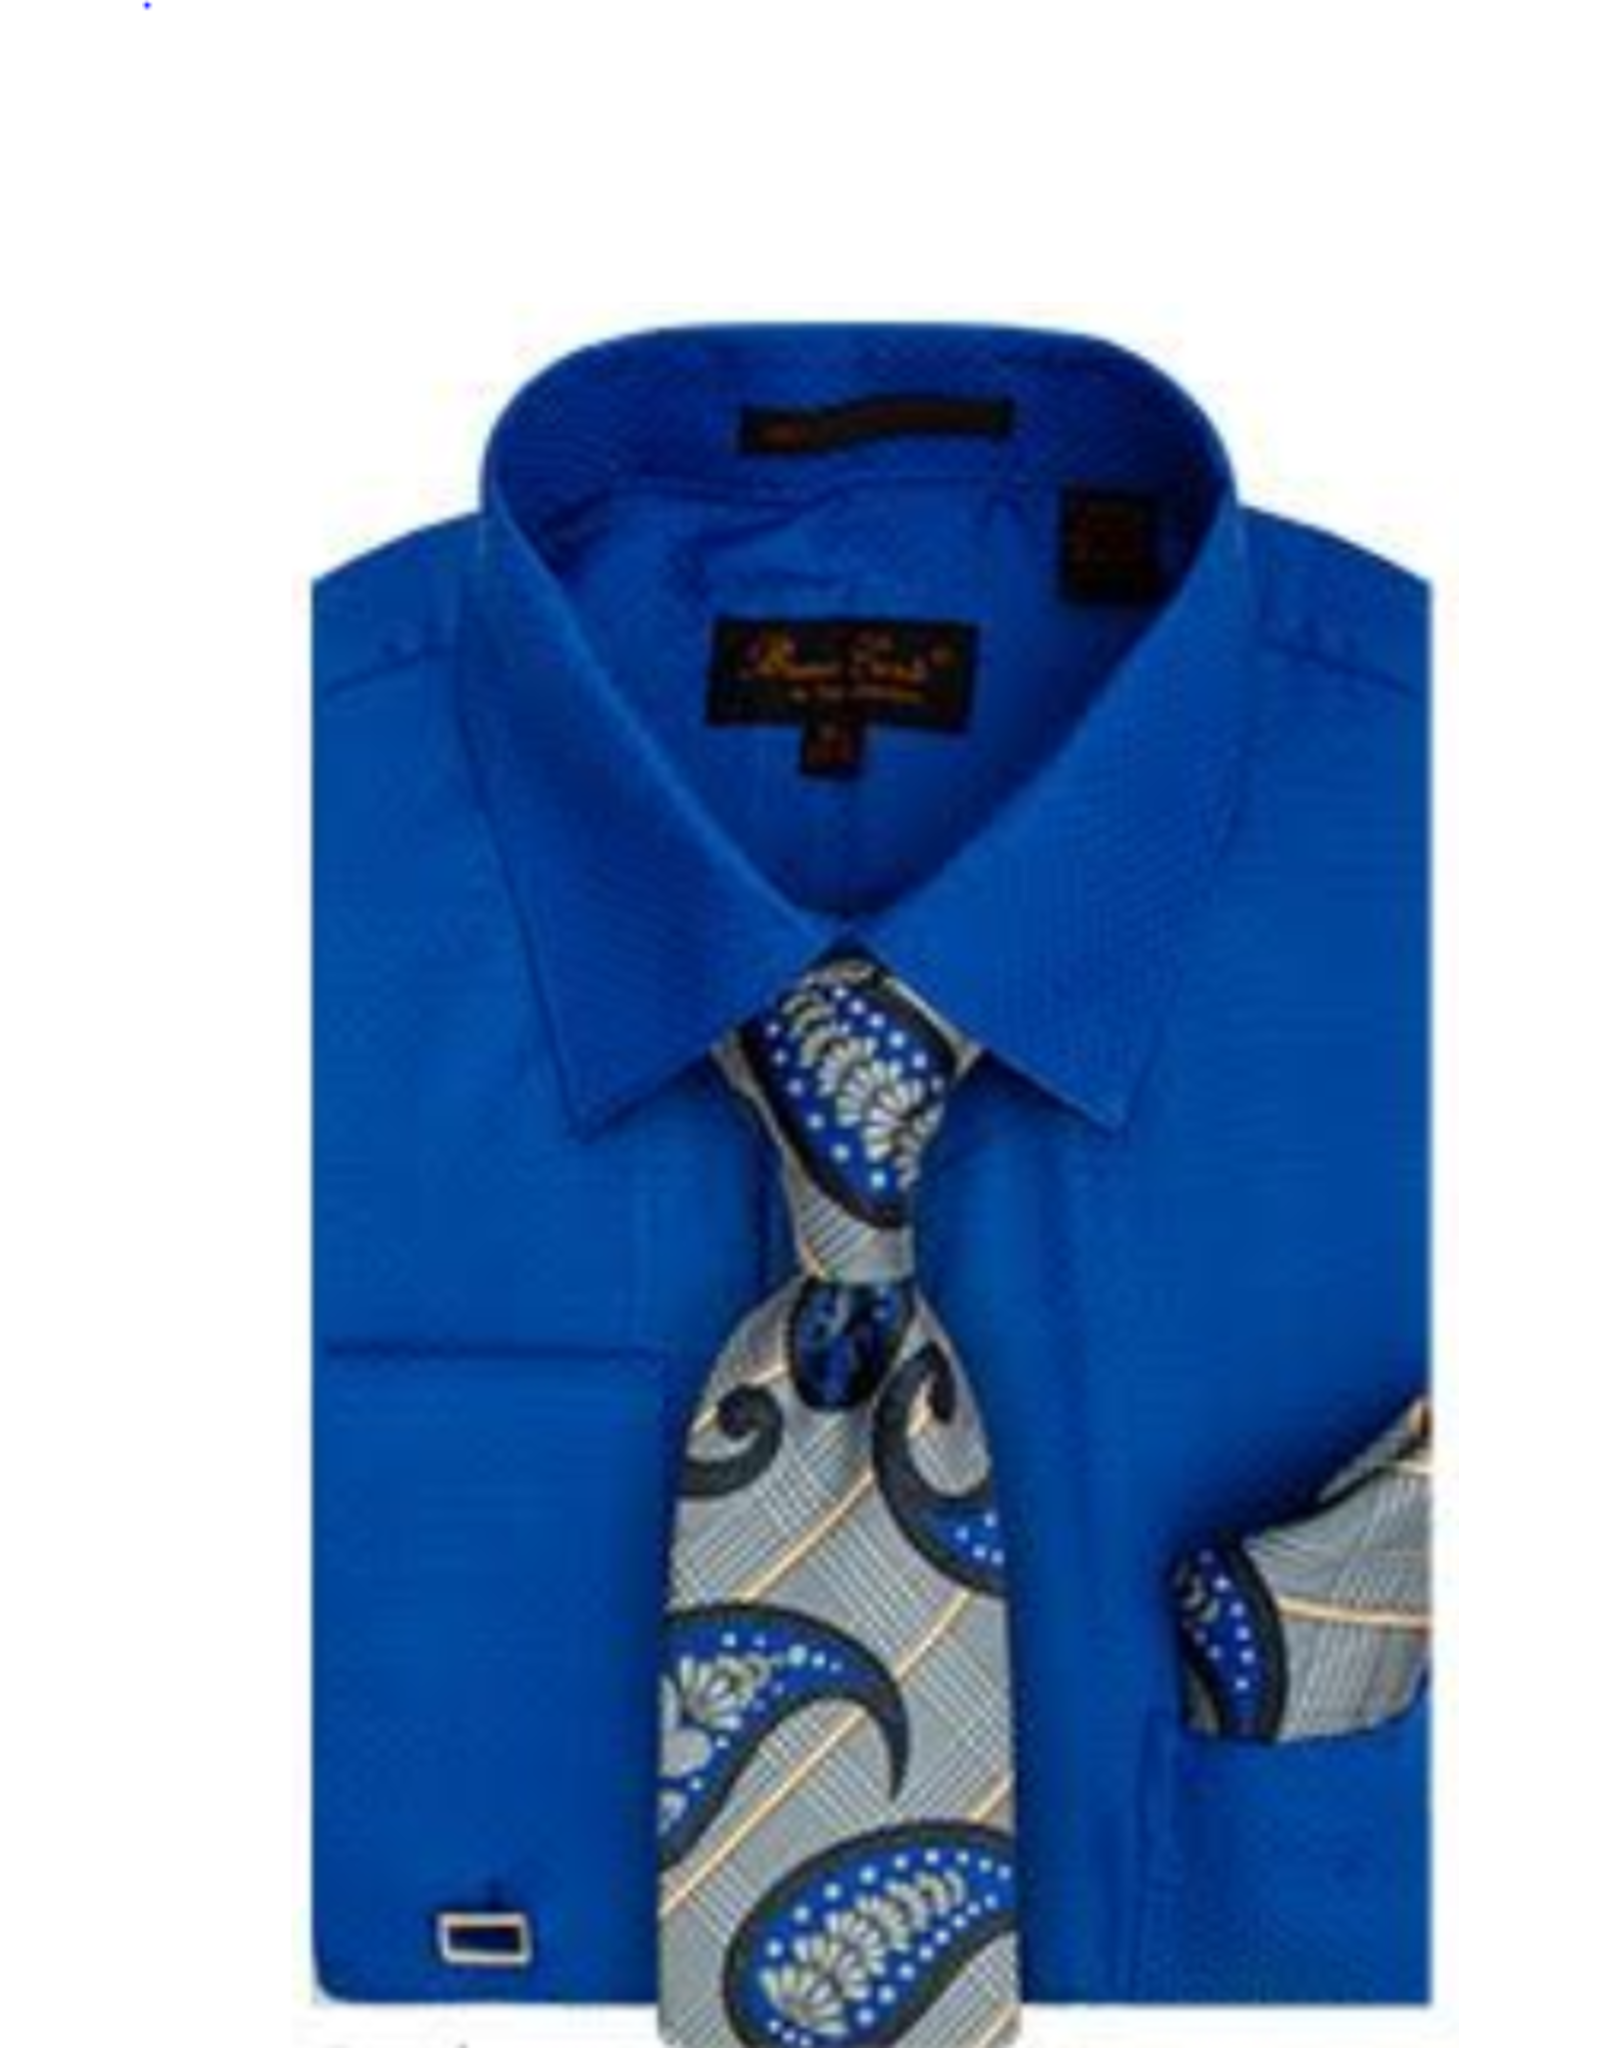 Henri Picard Henri Picard Shirt Set BC1082 Royal